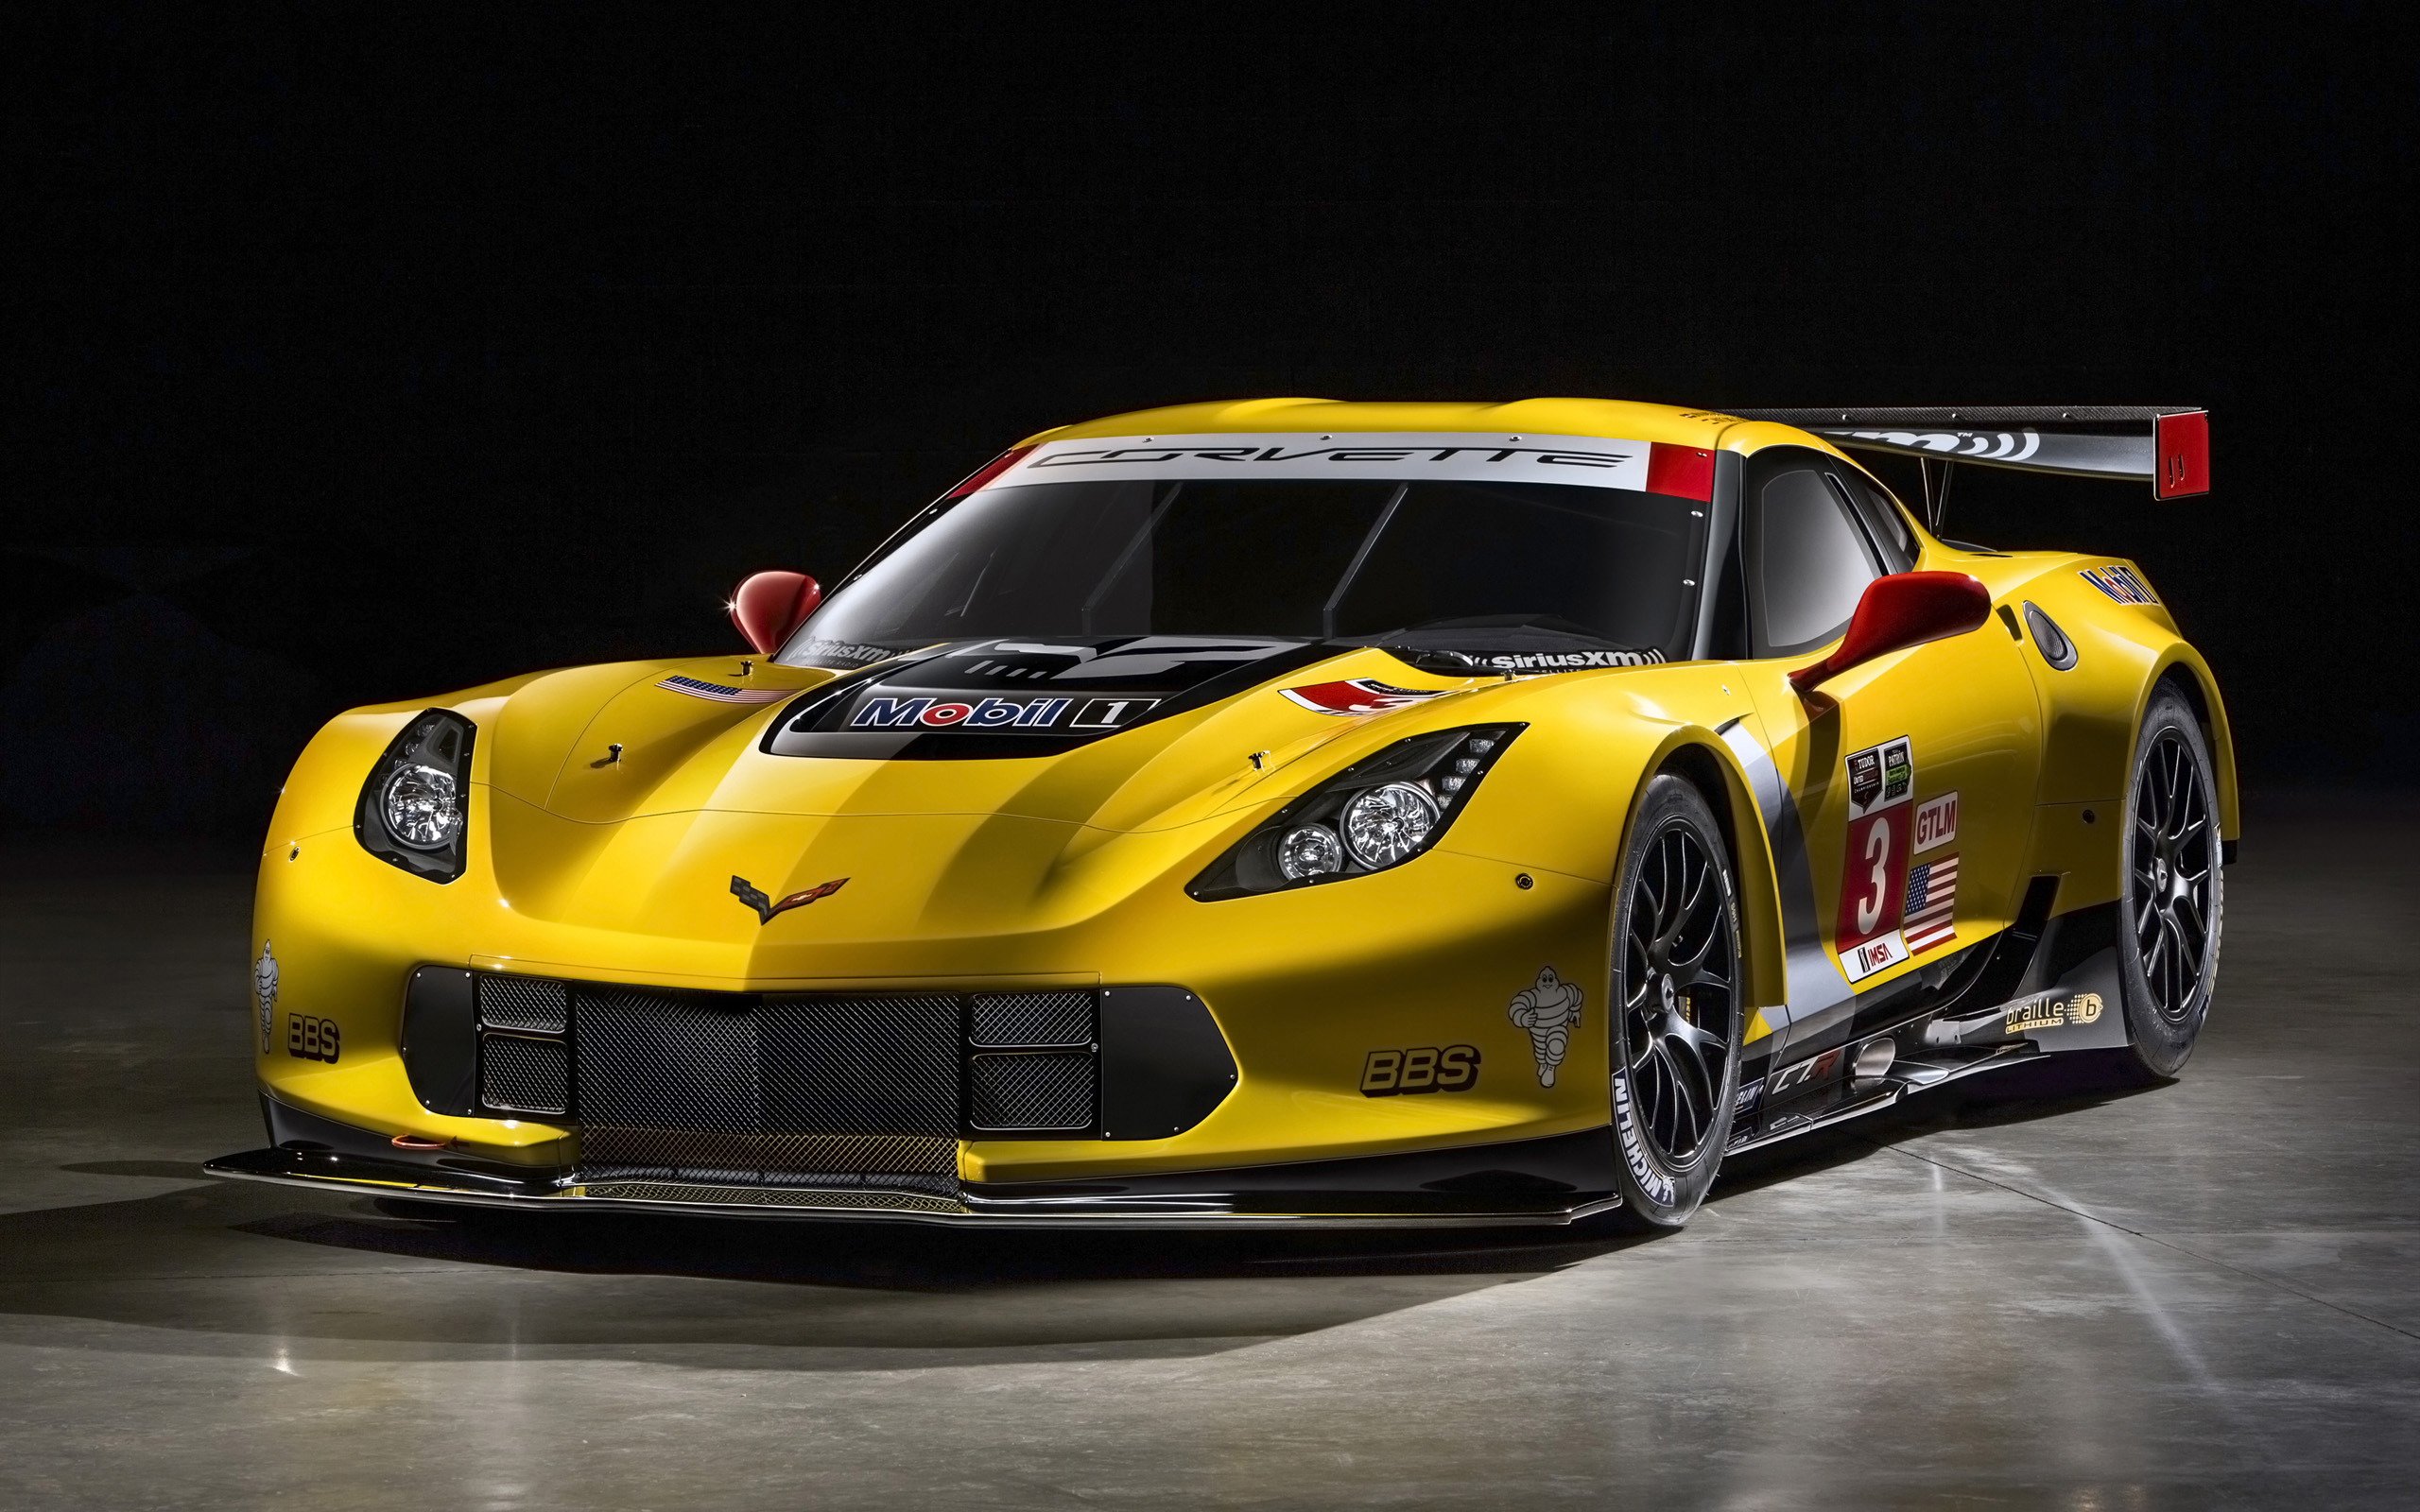 Chevrolet Corvette C7 R 2014 846.52 Kb